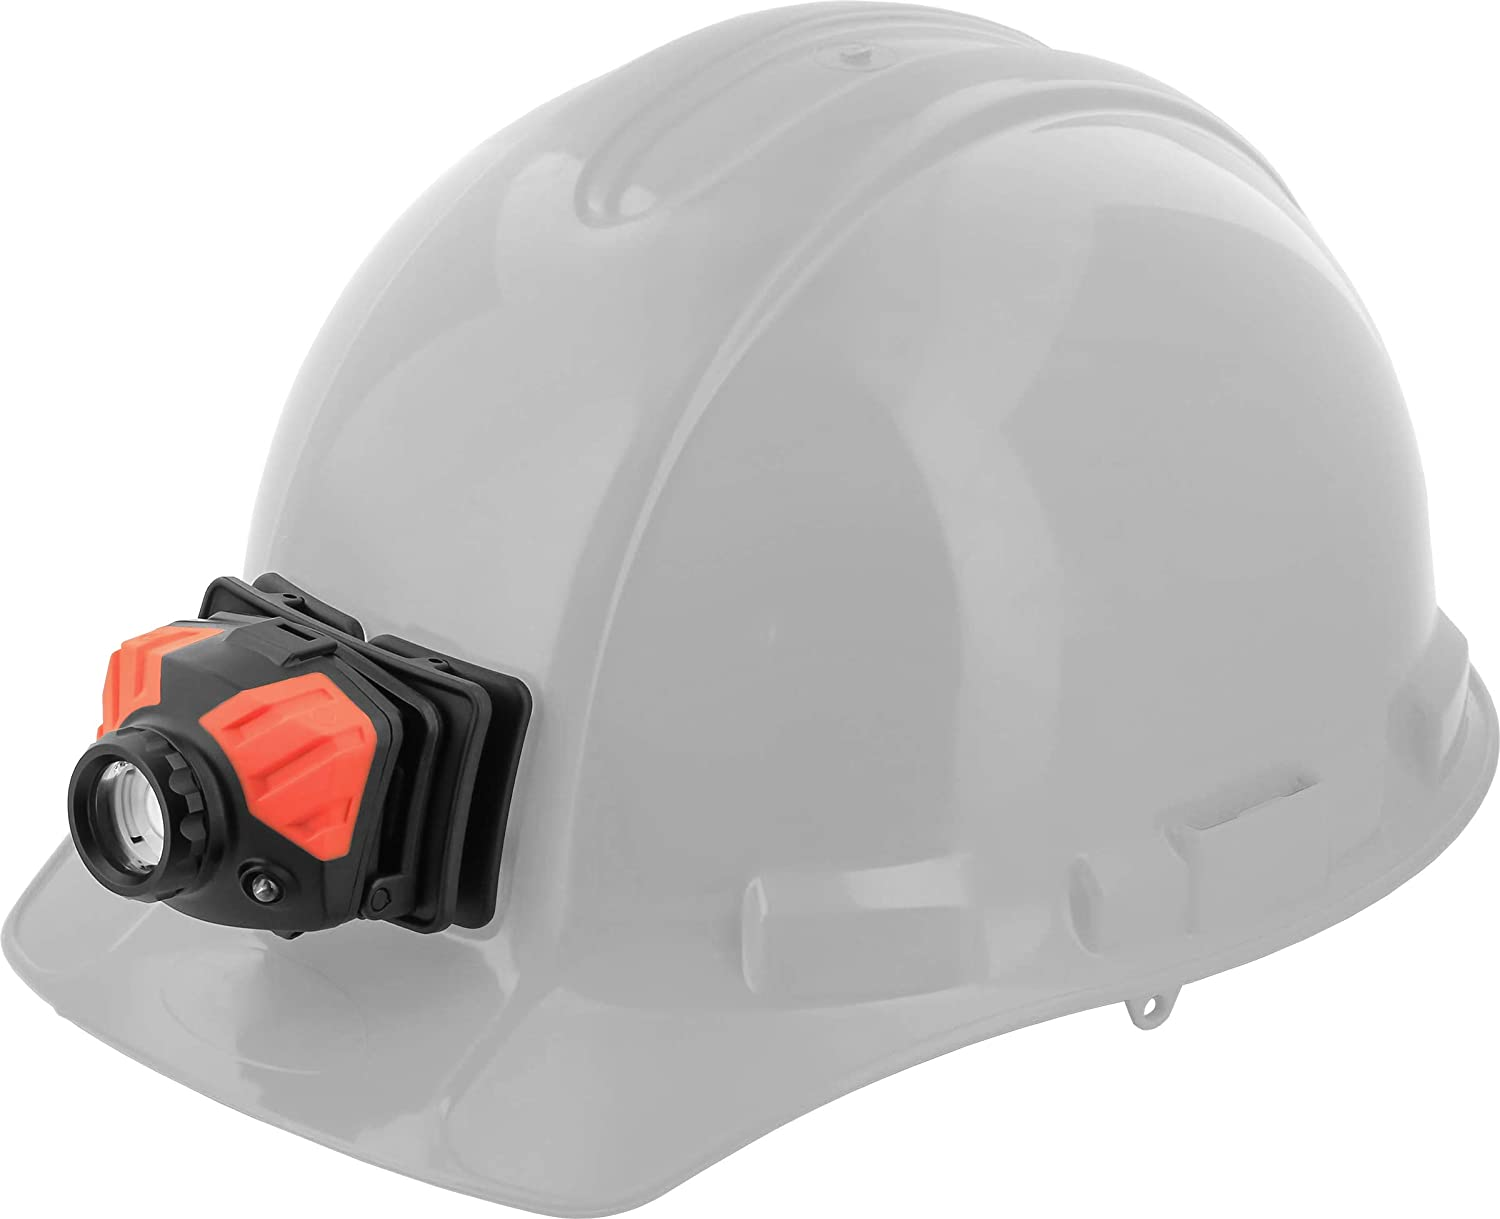 Coast Led fl60 cabeza casco lámpara lámpara